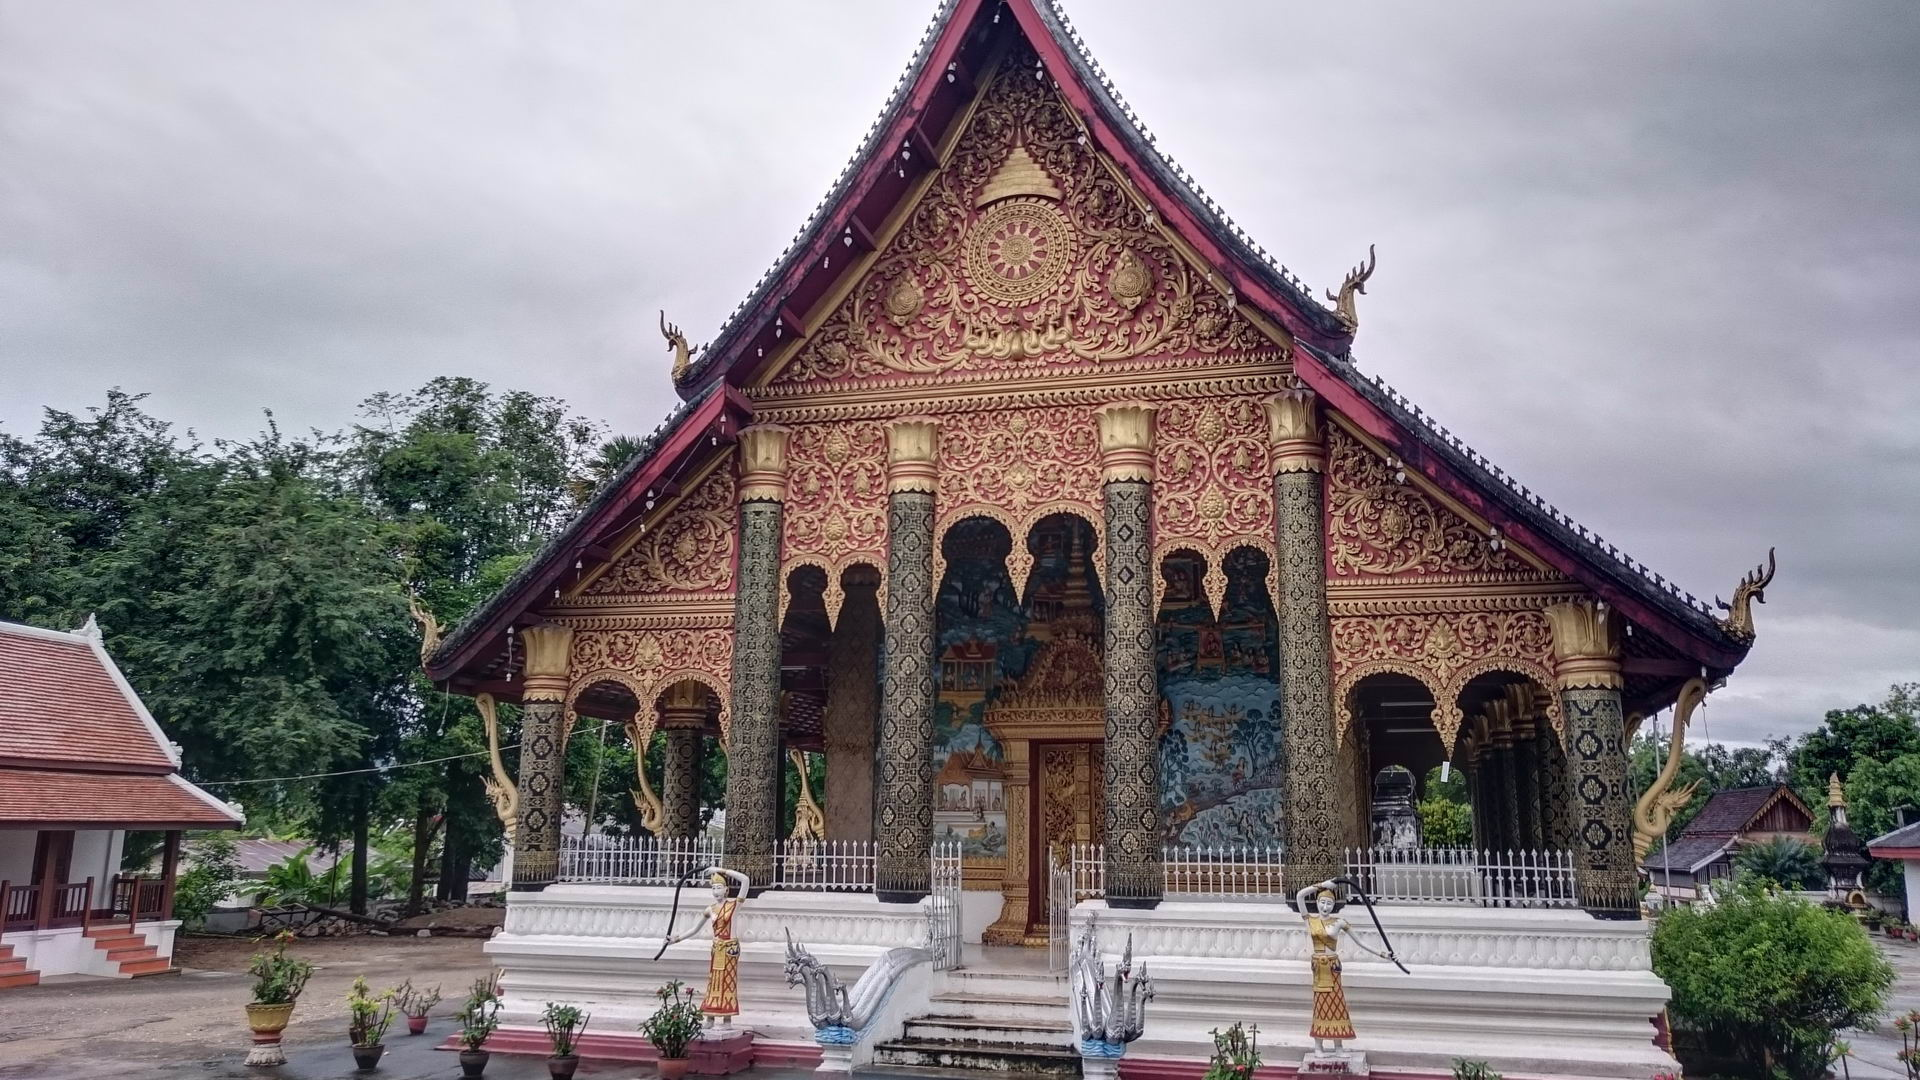 Wat Mahathat - Temple of the Great Stupa